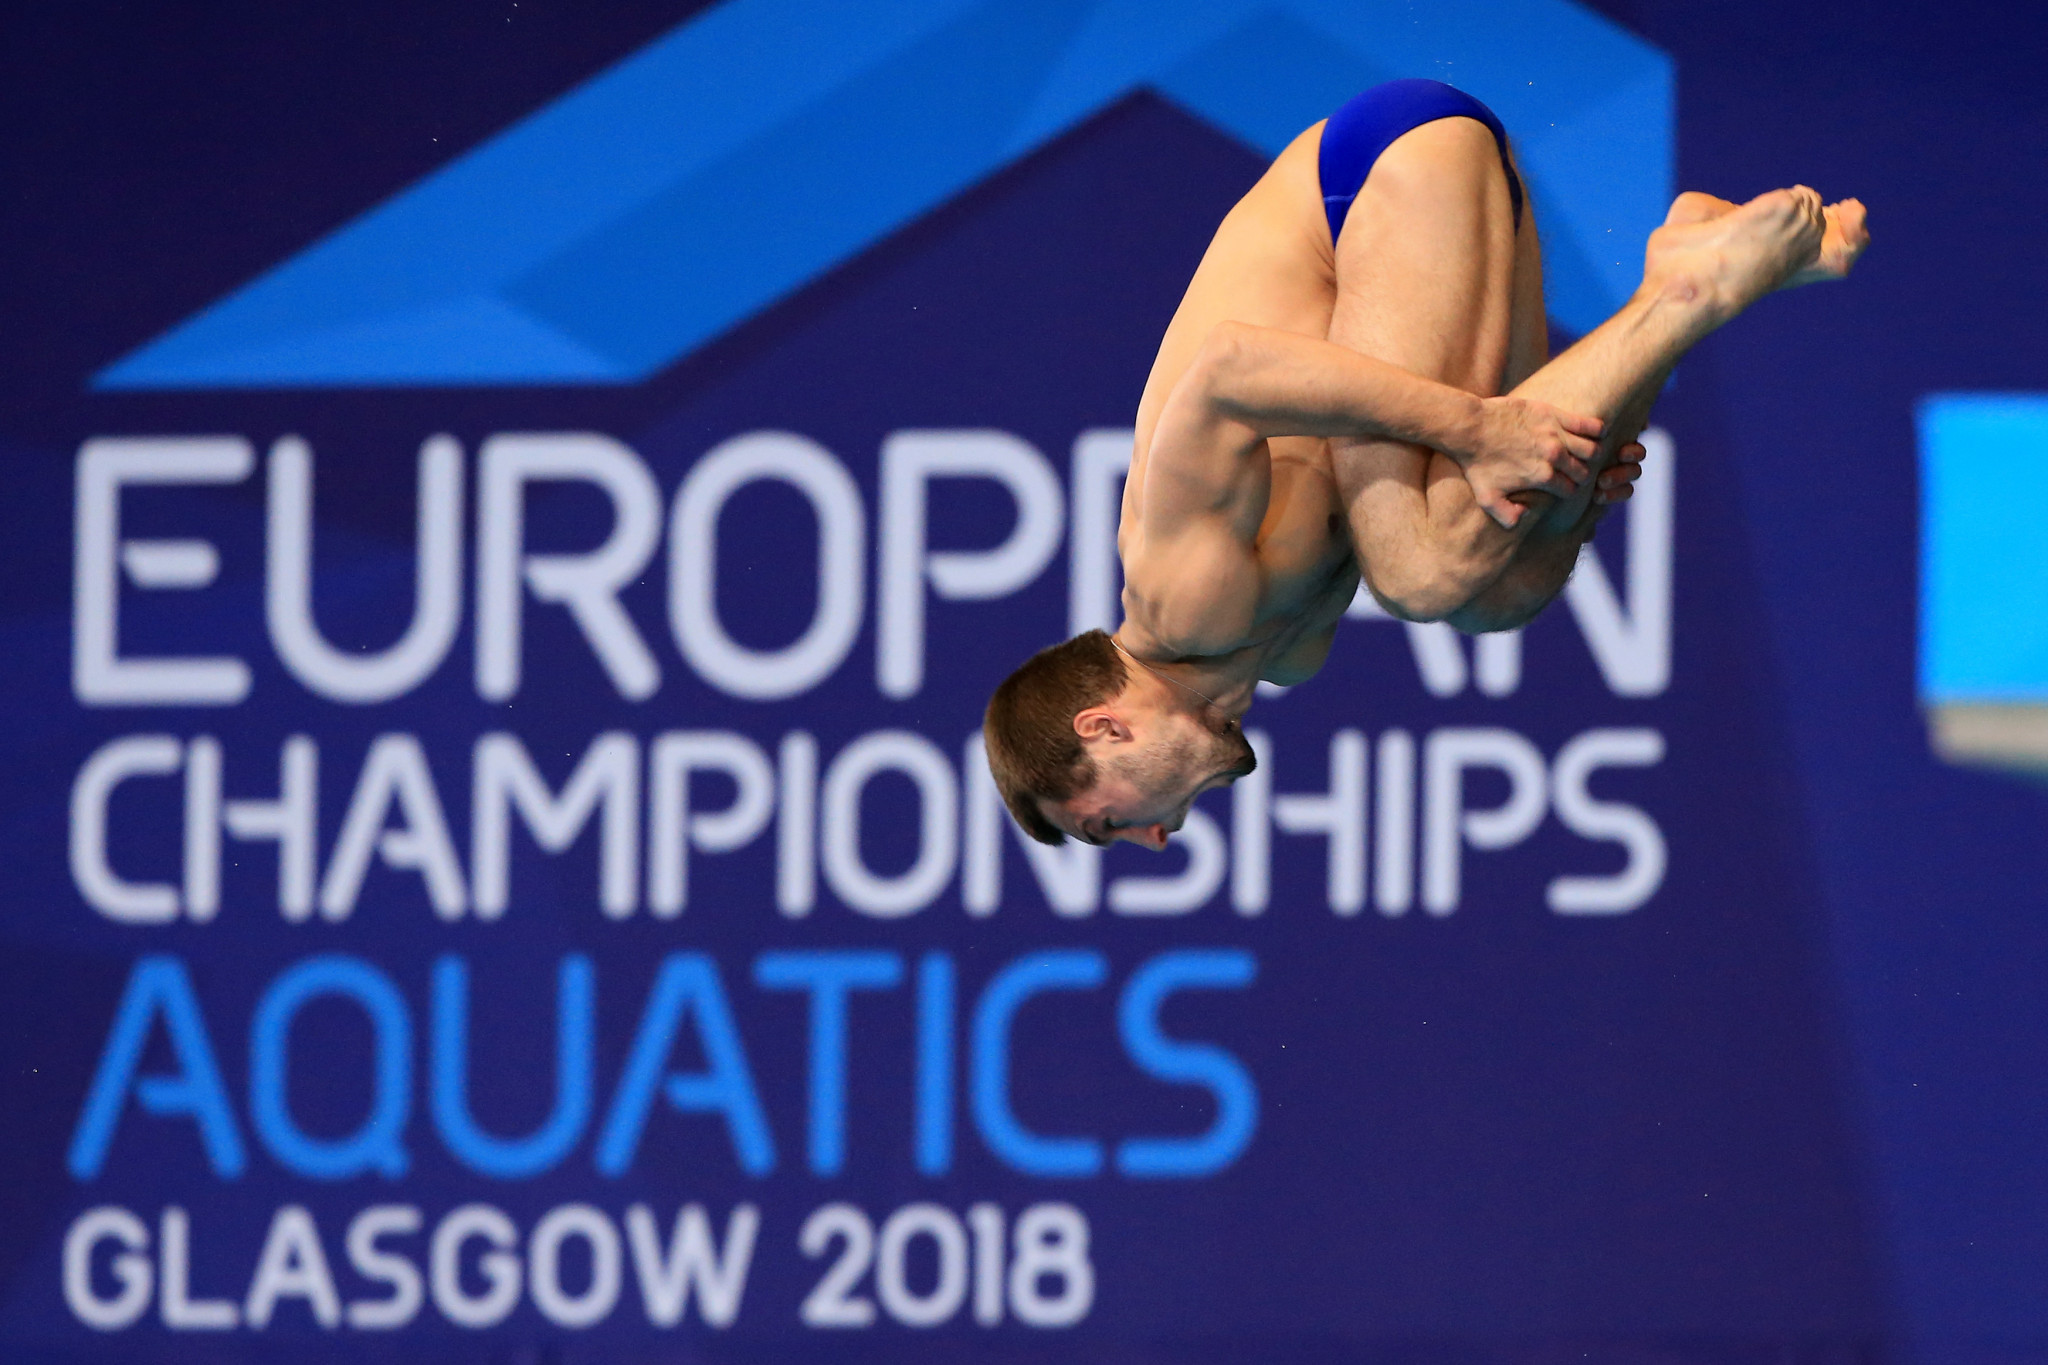 Russia's Aleksandr Bondar reigned supreme to re-capture his men's 10 metres platform crown as diving competition concluded today at the Glasgow 2018 European Championships ©Getty Images